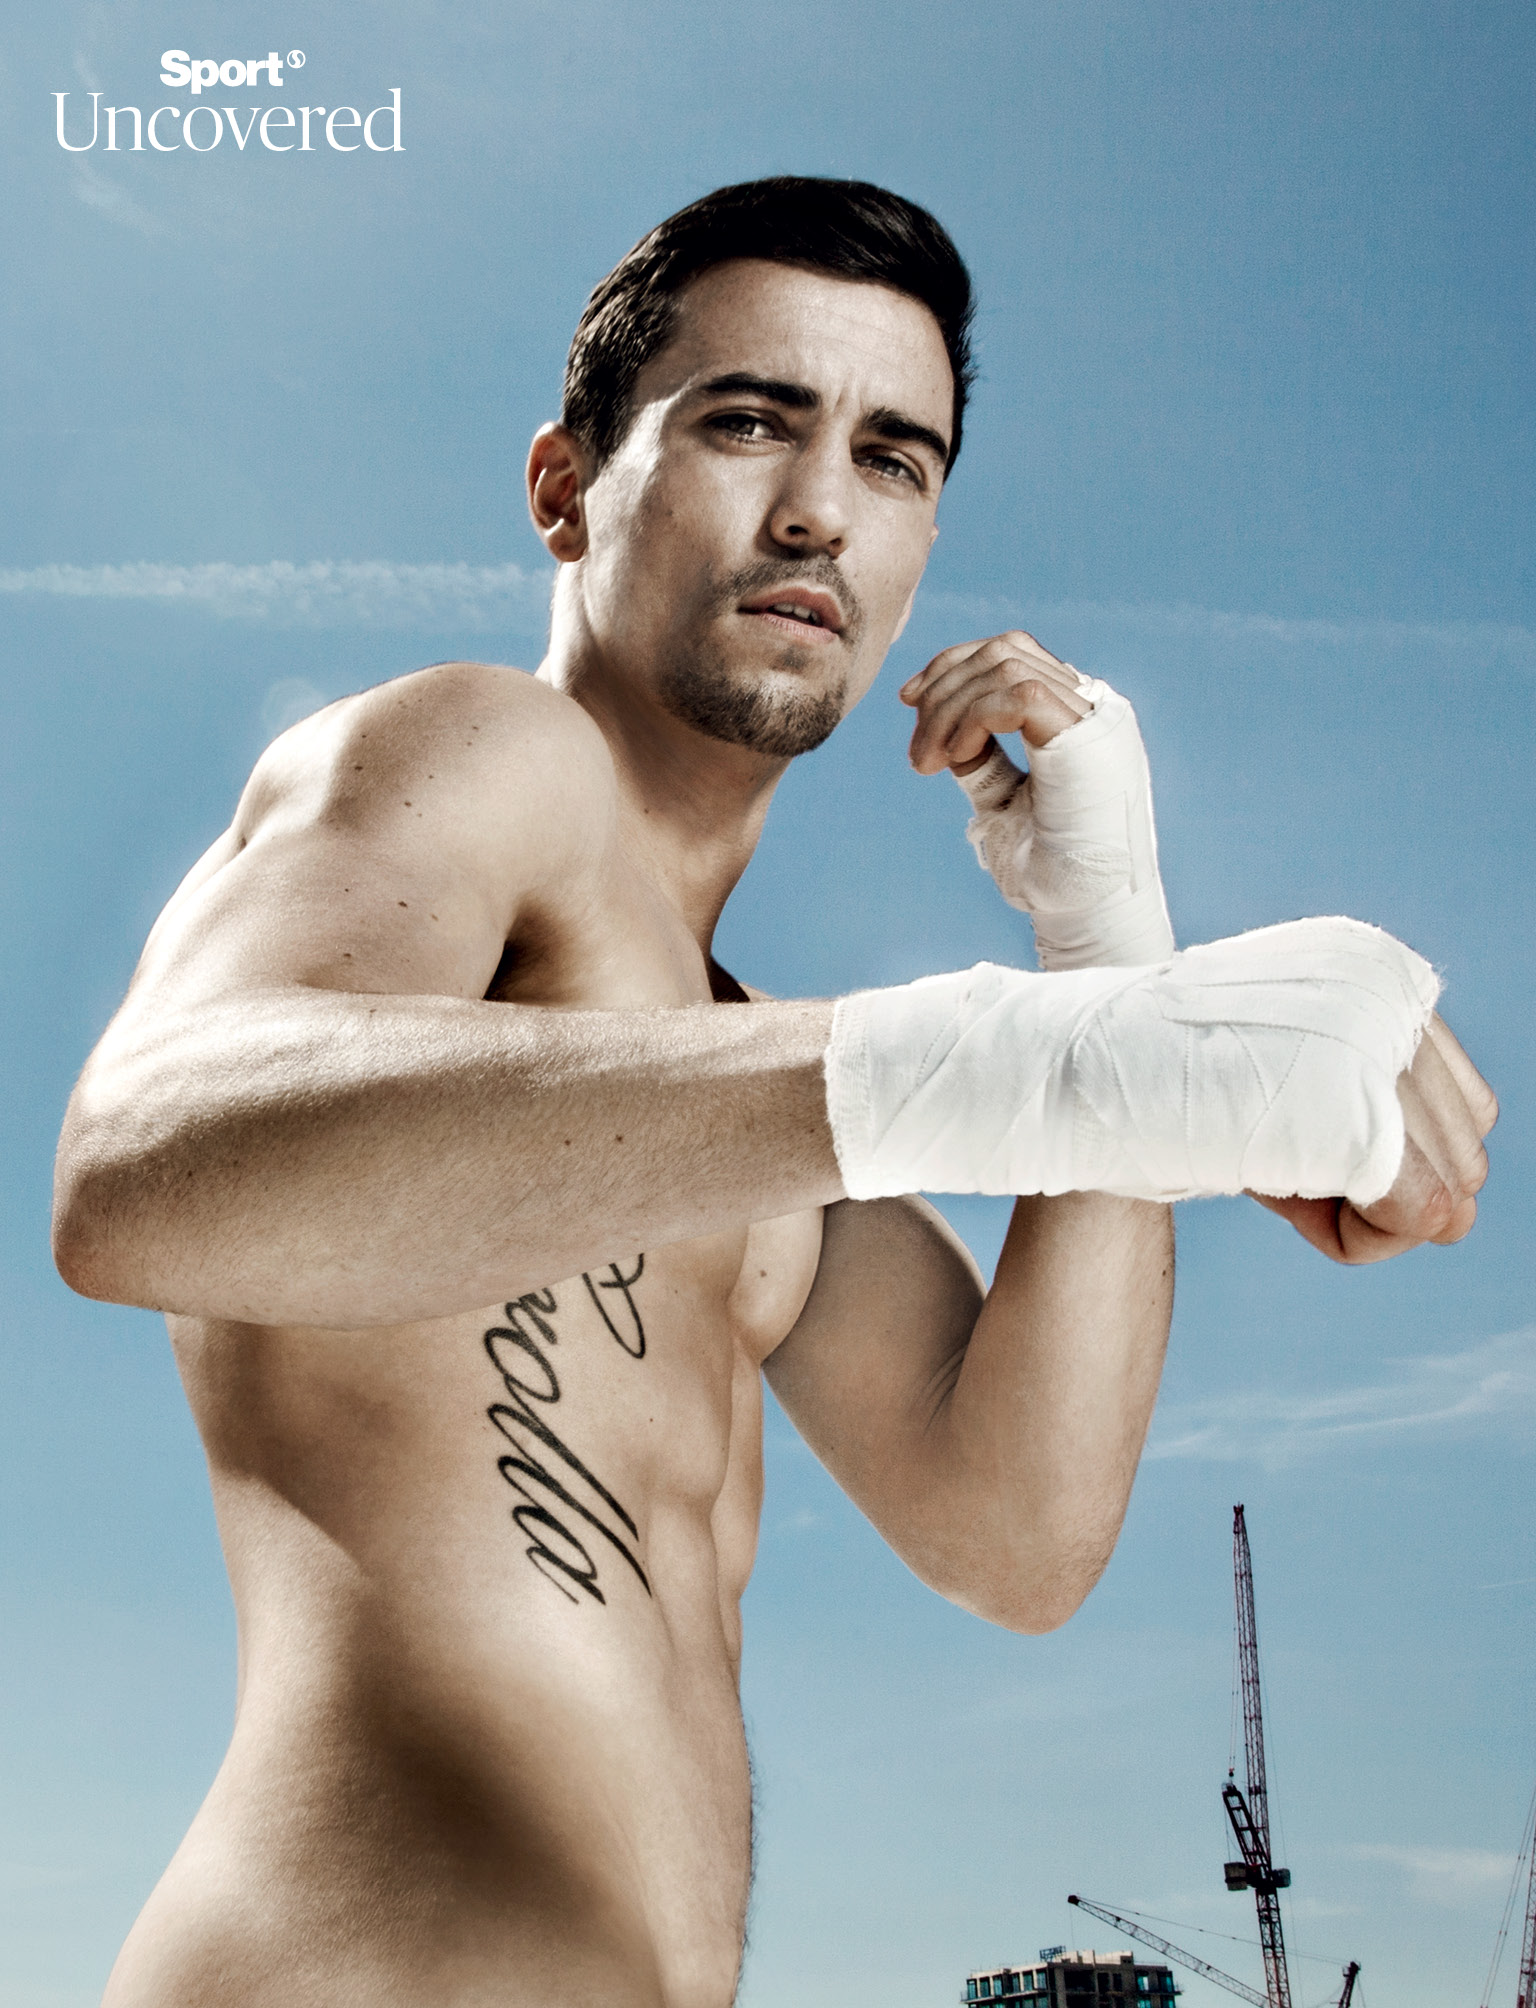 Anthony Crolla SportUncovered.jpg